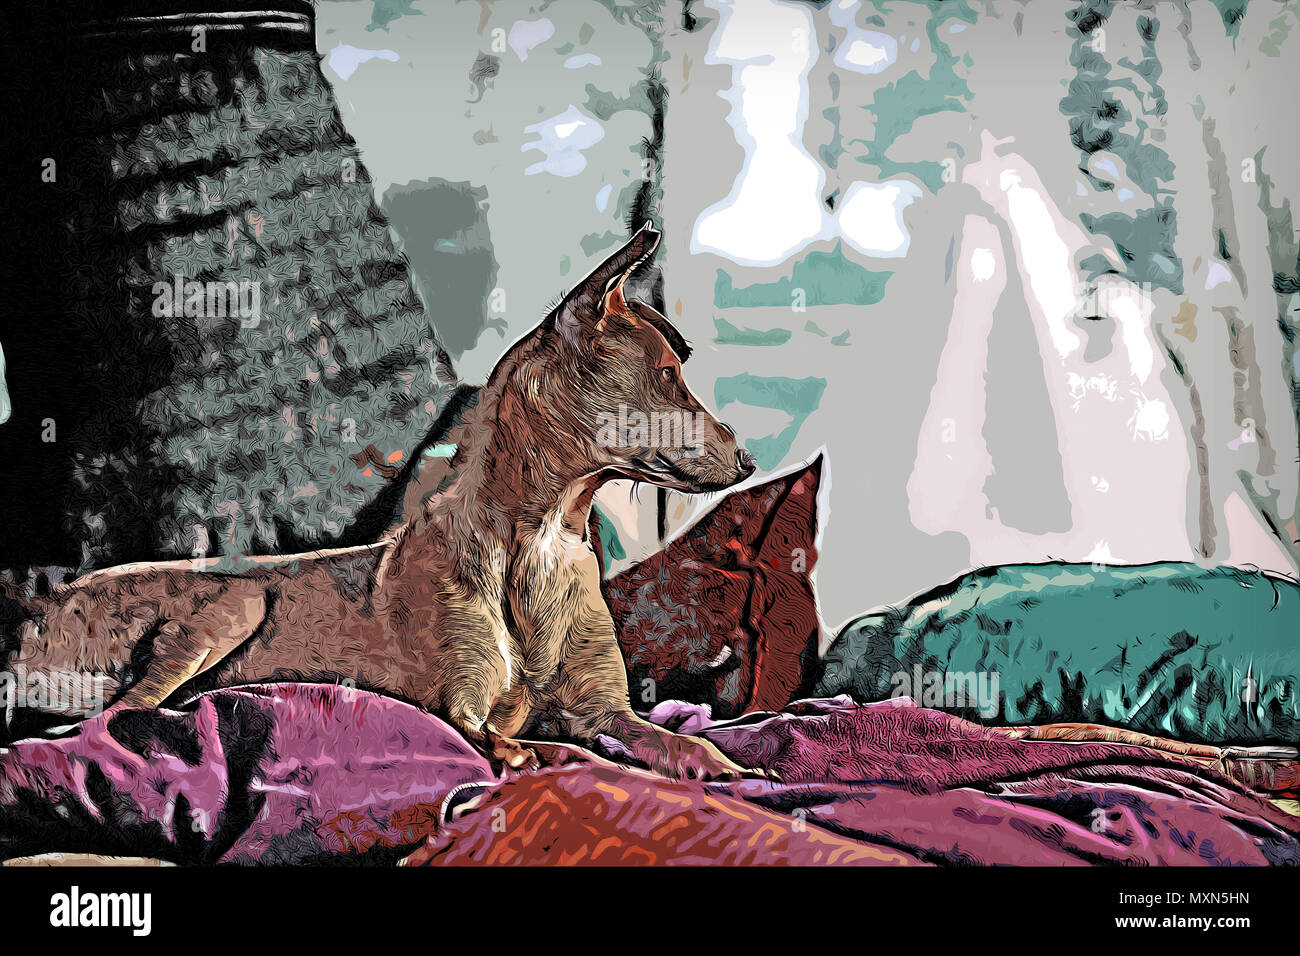 Illustration of a dog laying in bed outside and looking to the right during summer. - Stock Image